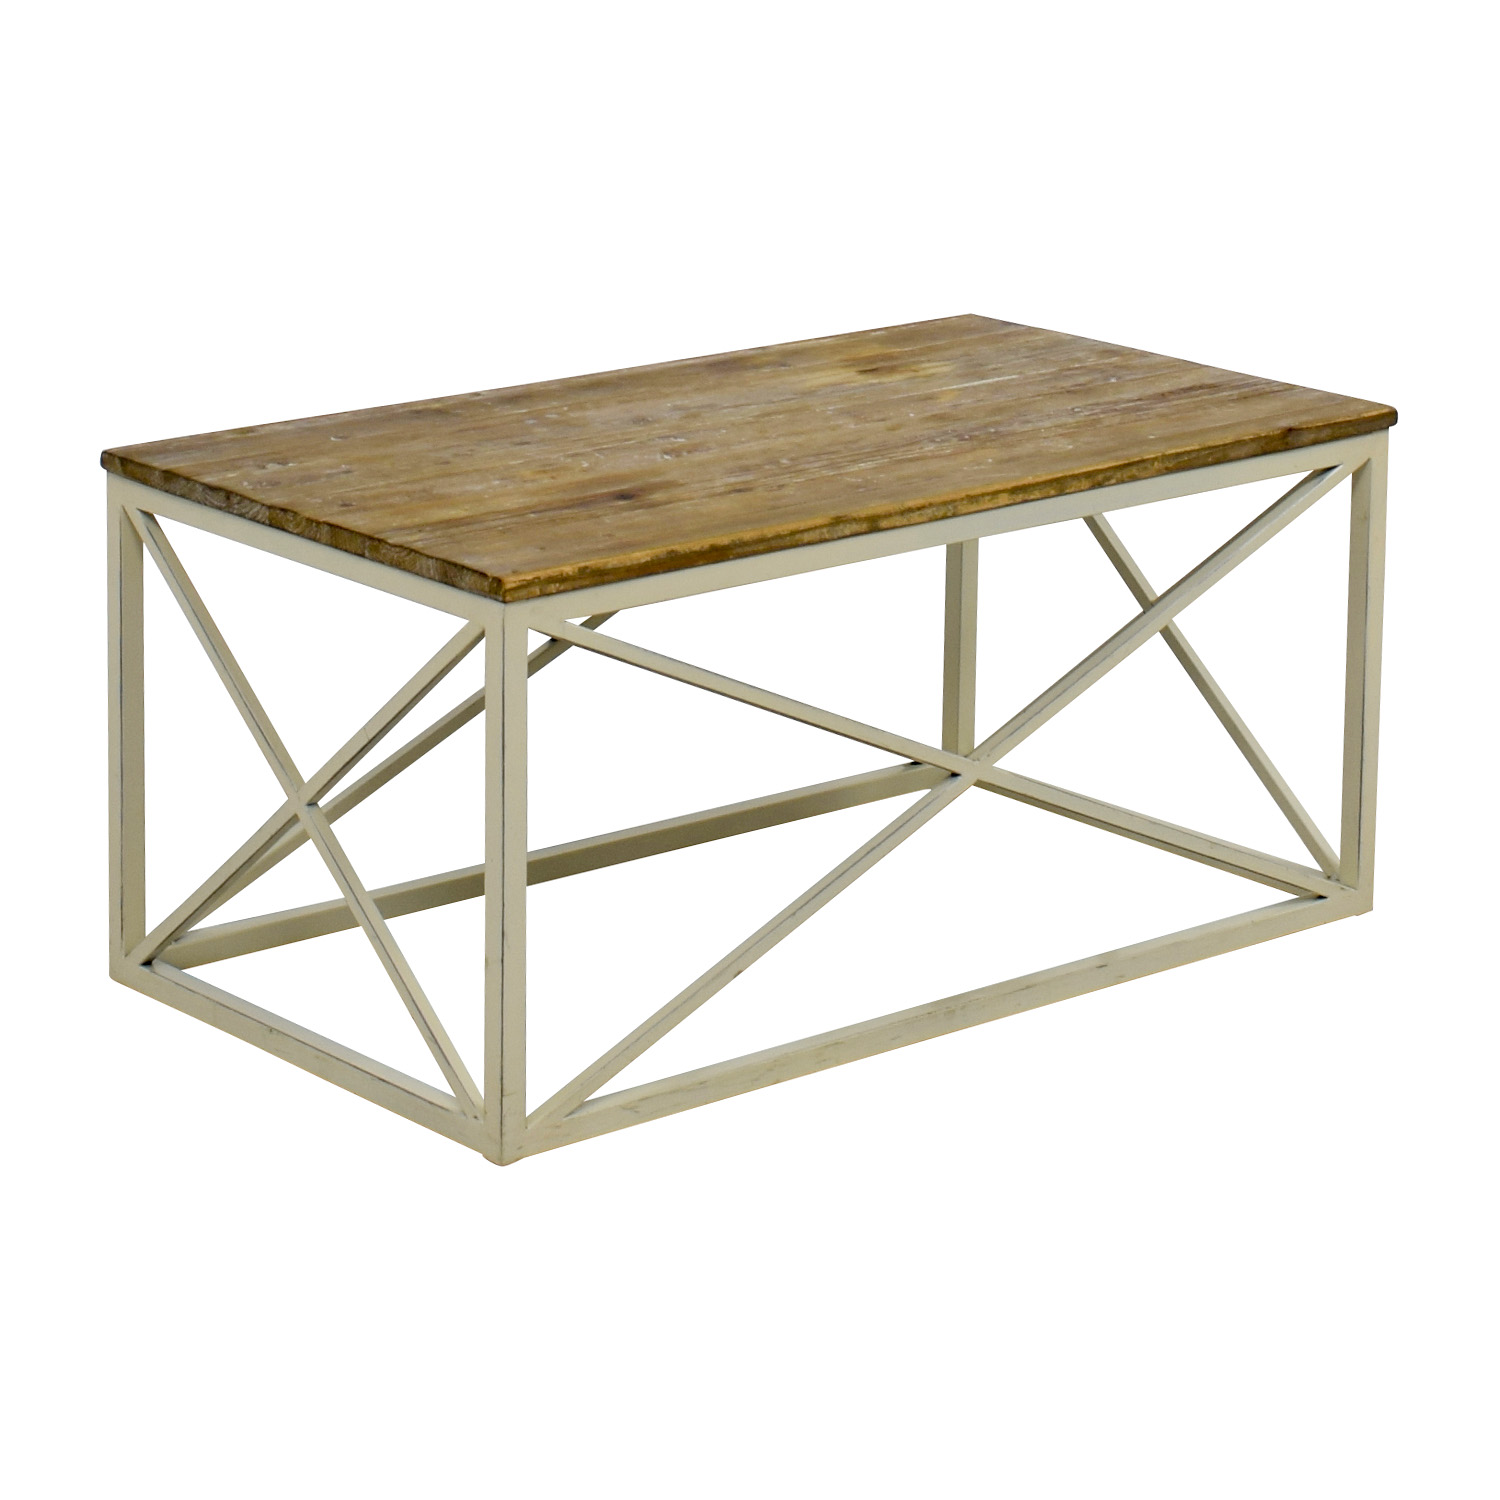 ... Wayfair Wooden And Metal Coffee Table / Coffee Tables ...